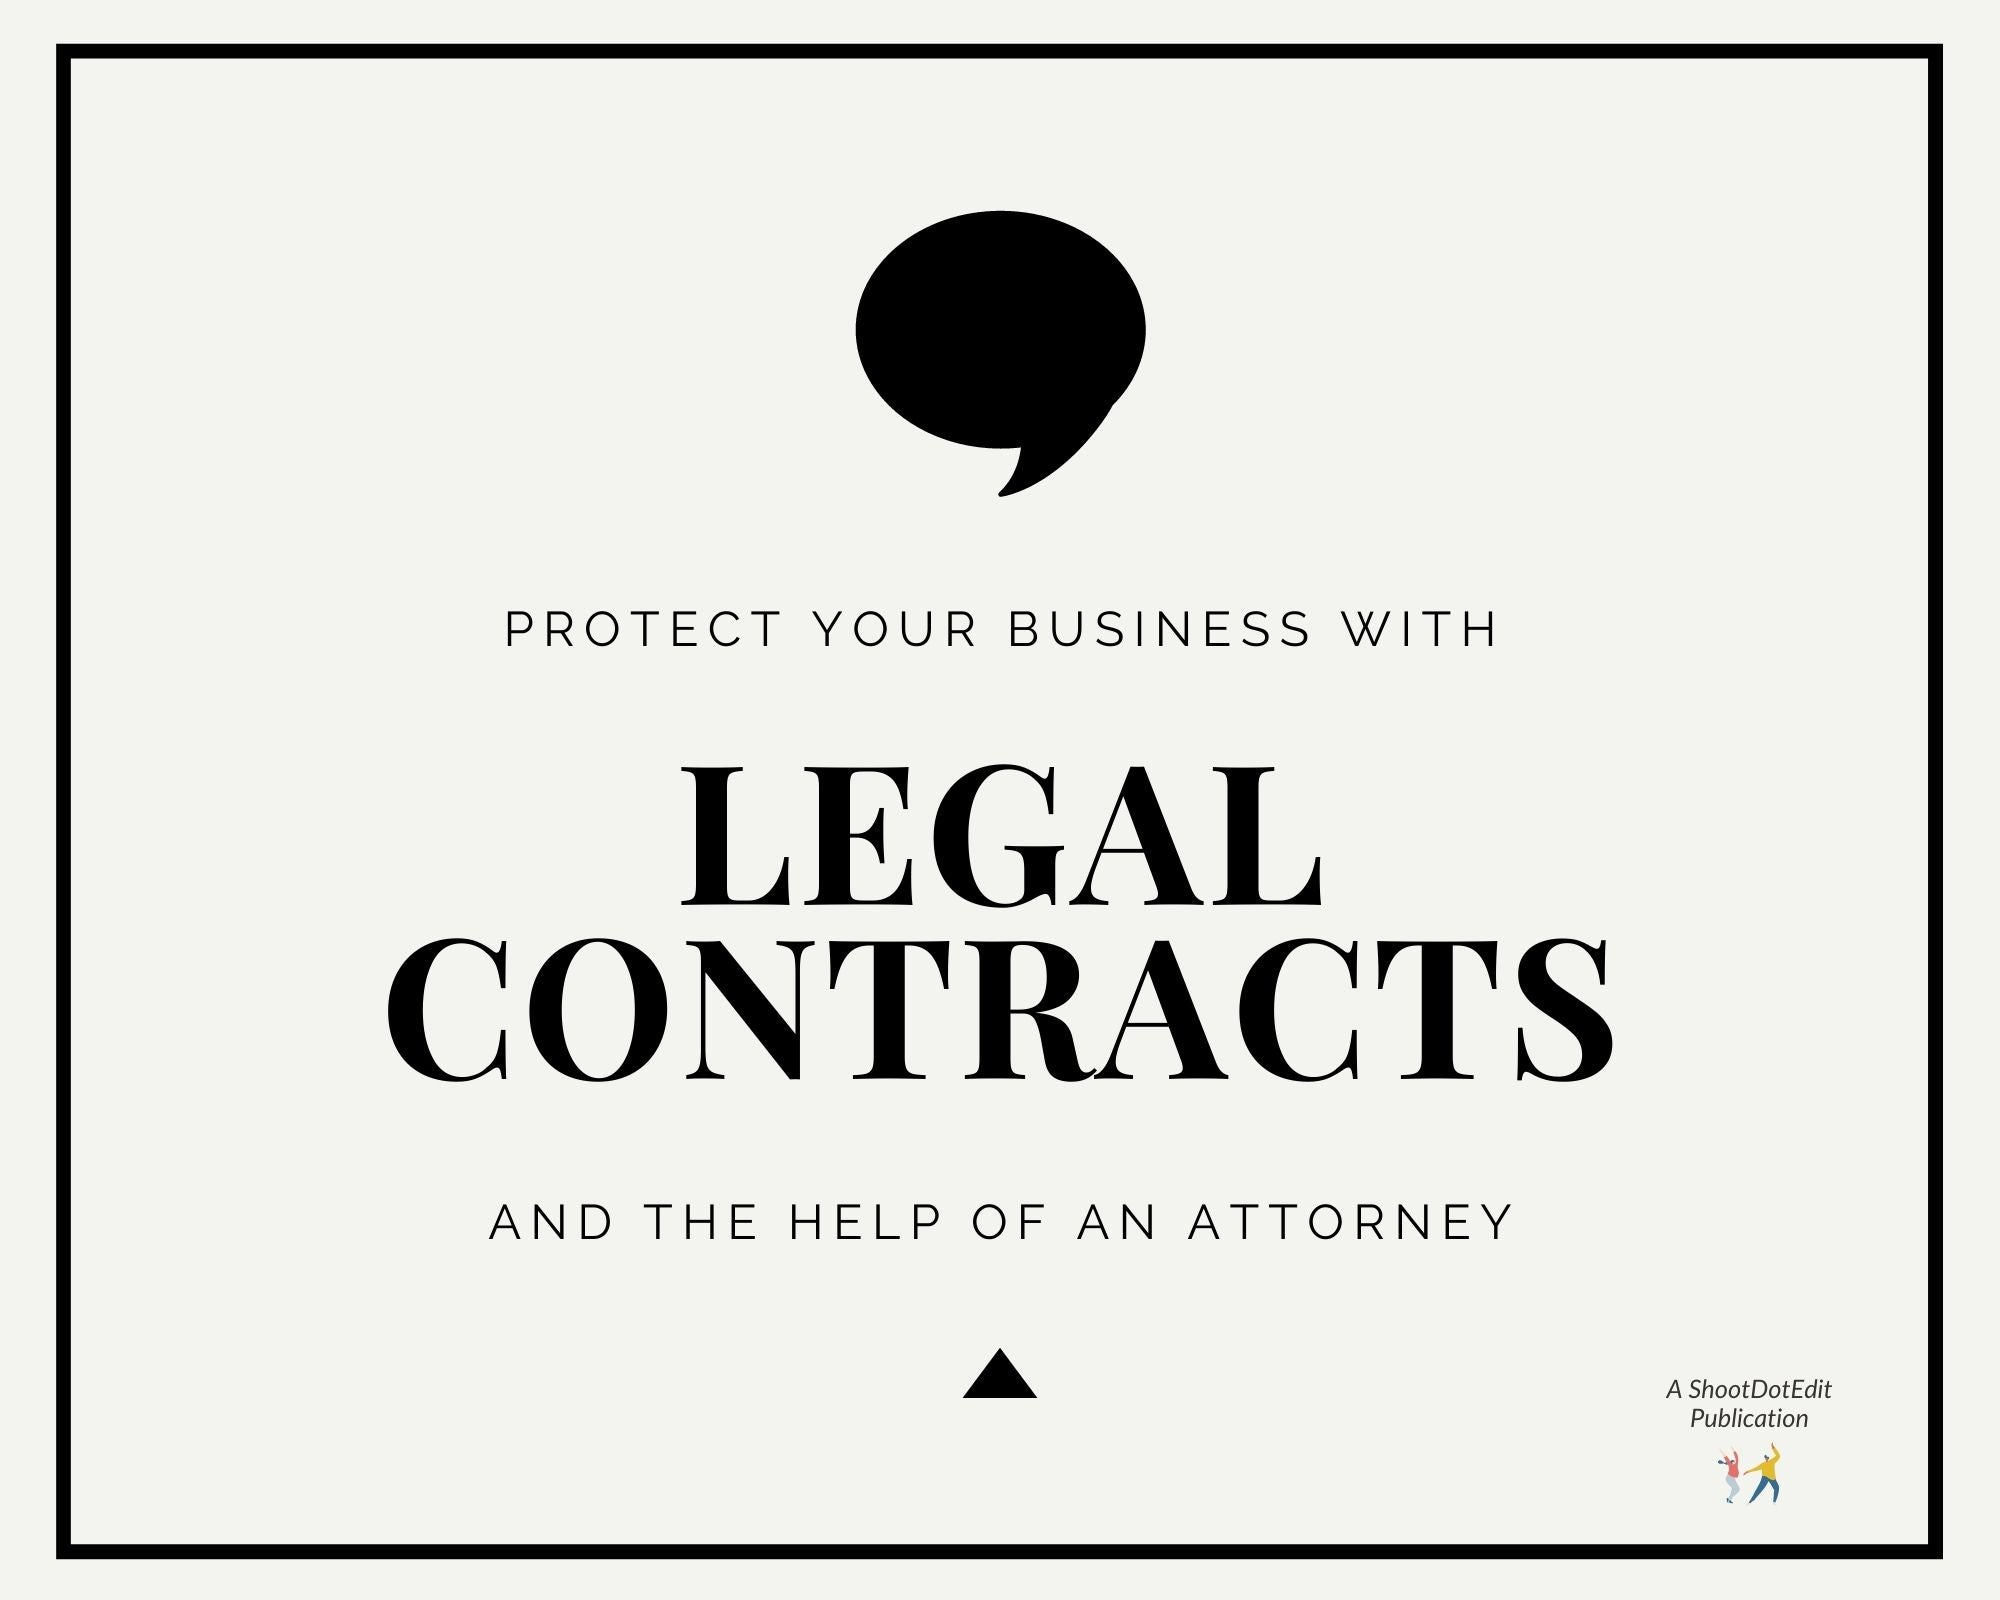 Infographic stating protect your business with legal contracts and the help of an attorney